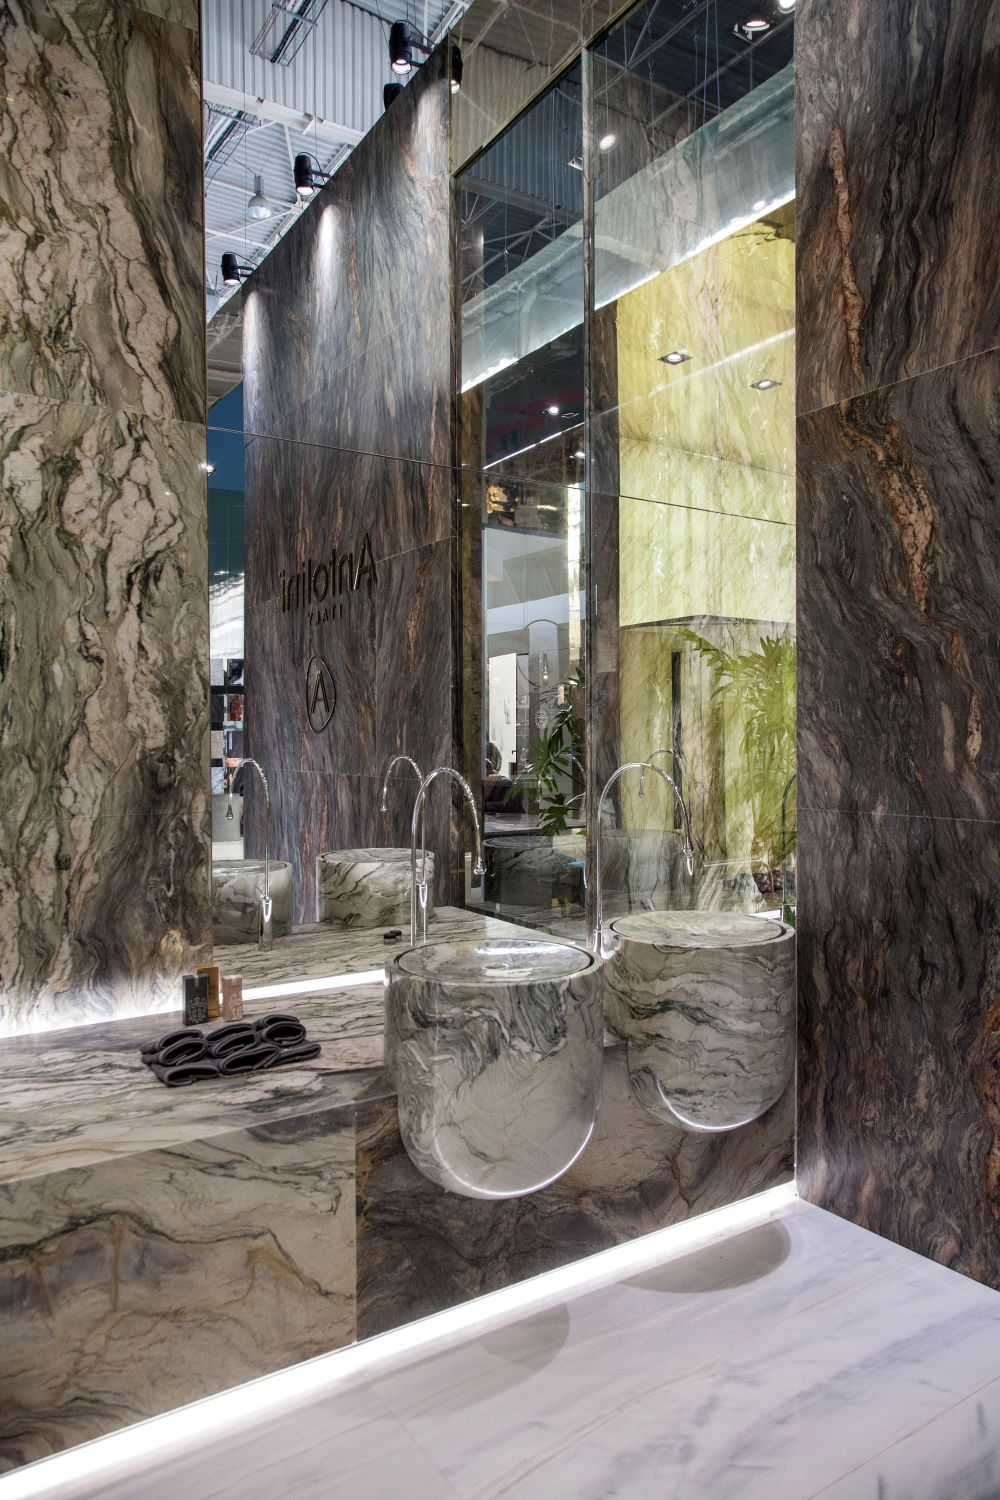 This is a luxurious bathroom setup which takes full advantage of the lighting and the mirrored surfaces